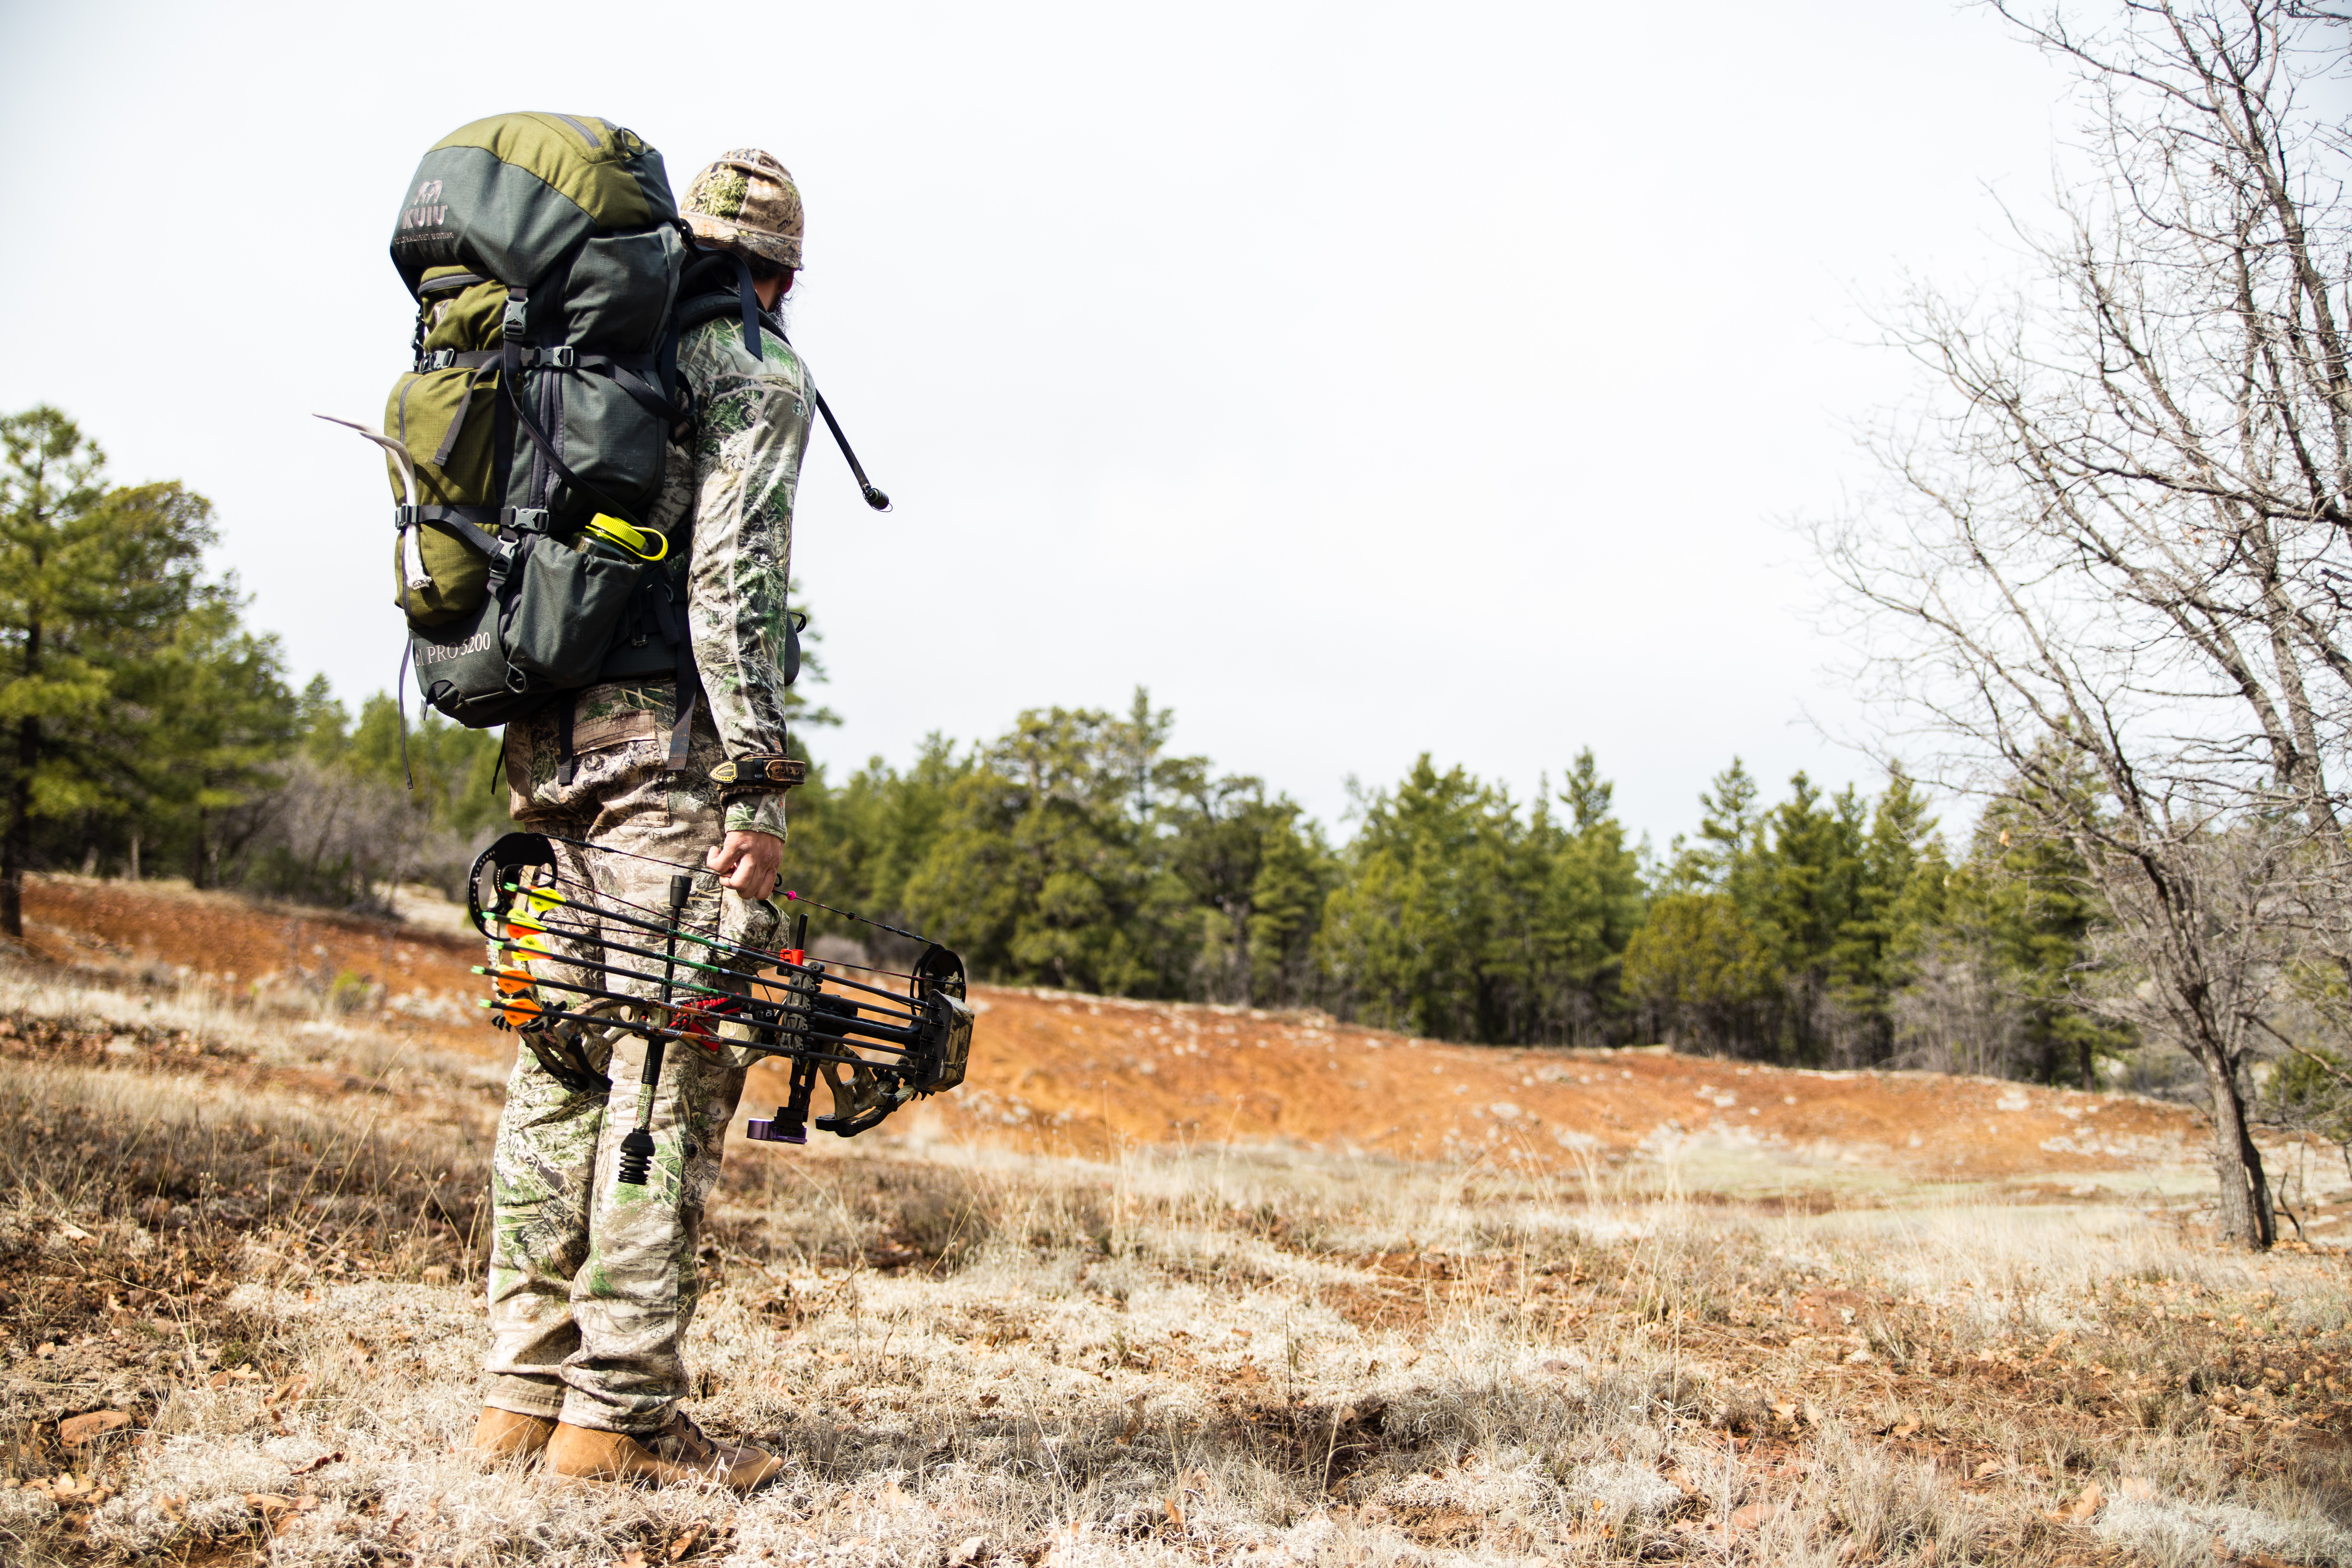 Hunter Day Yukon >> Kuiu Icon Pro 5200 Review - Dialed In Hunter